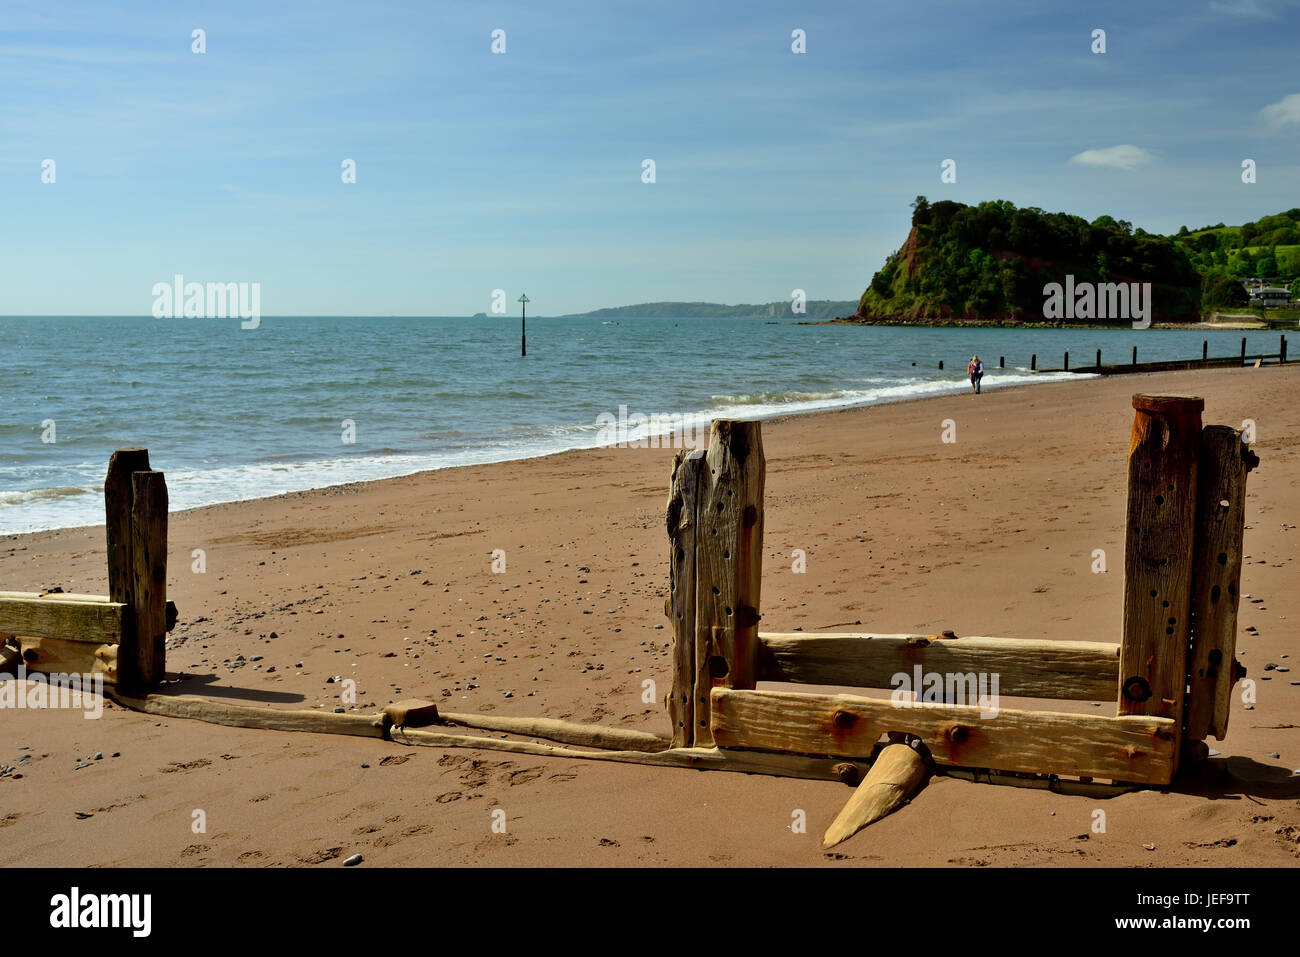 Deteriorating groynes on the beach, looking towards the Ness. - Stock Image